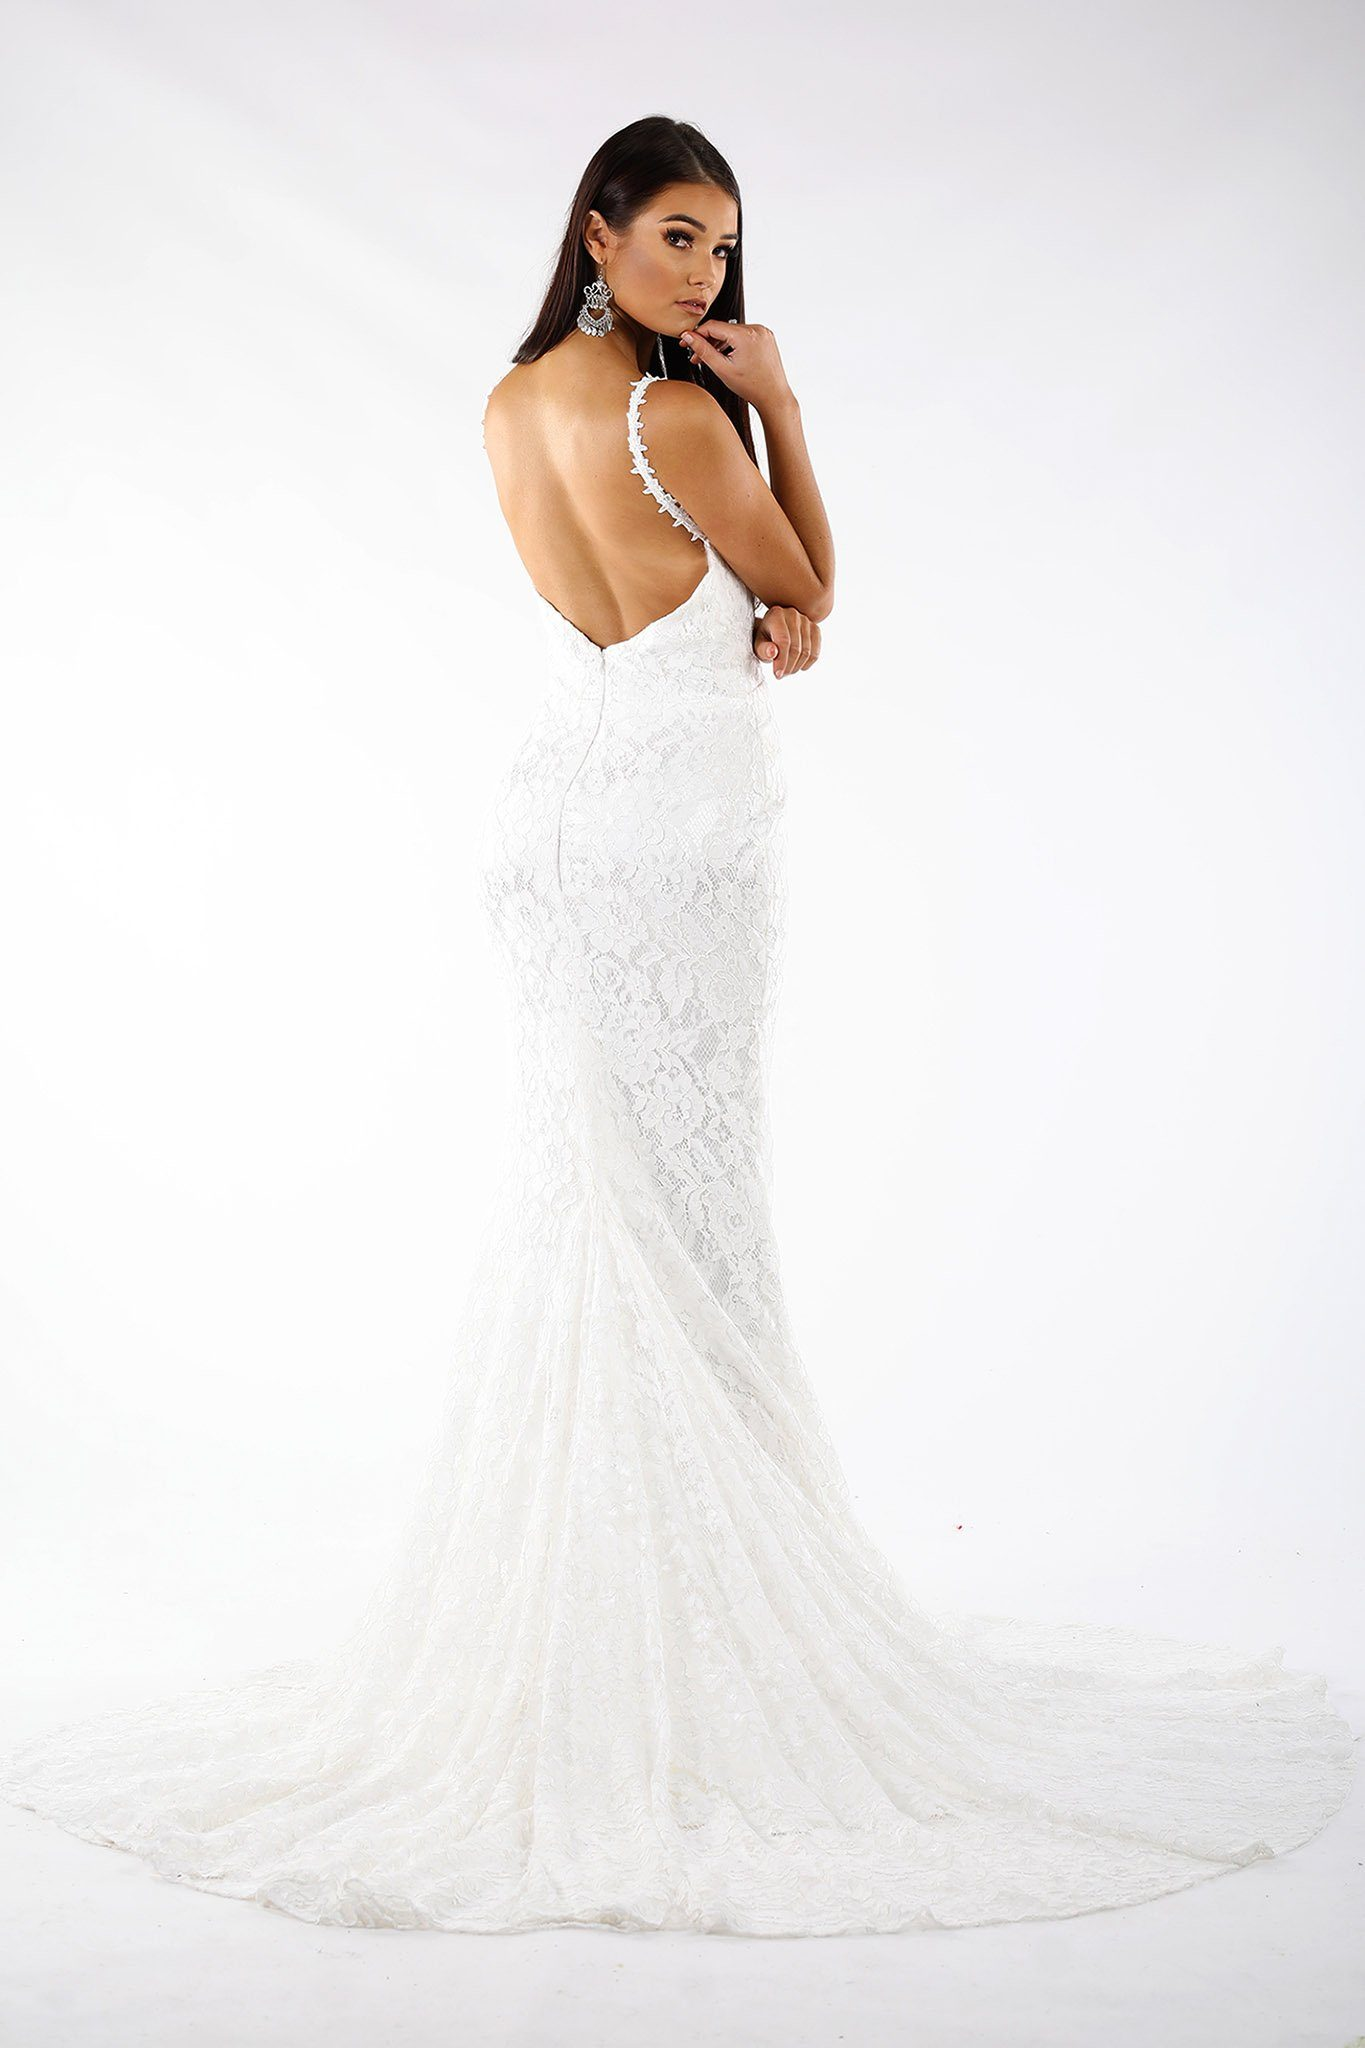 White sleeveless lace fitted maxi formal wedding dress V neck, lace trim shoulder straps, V backless, long train